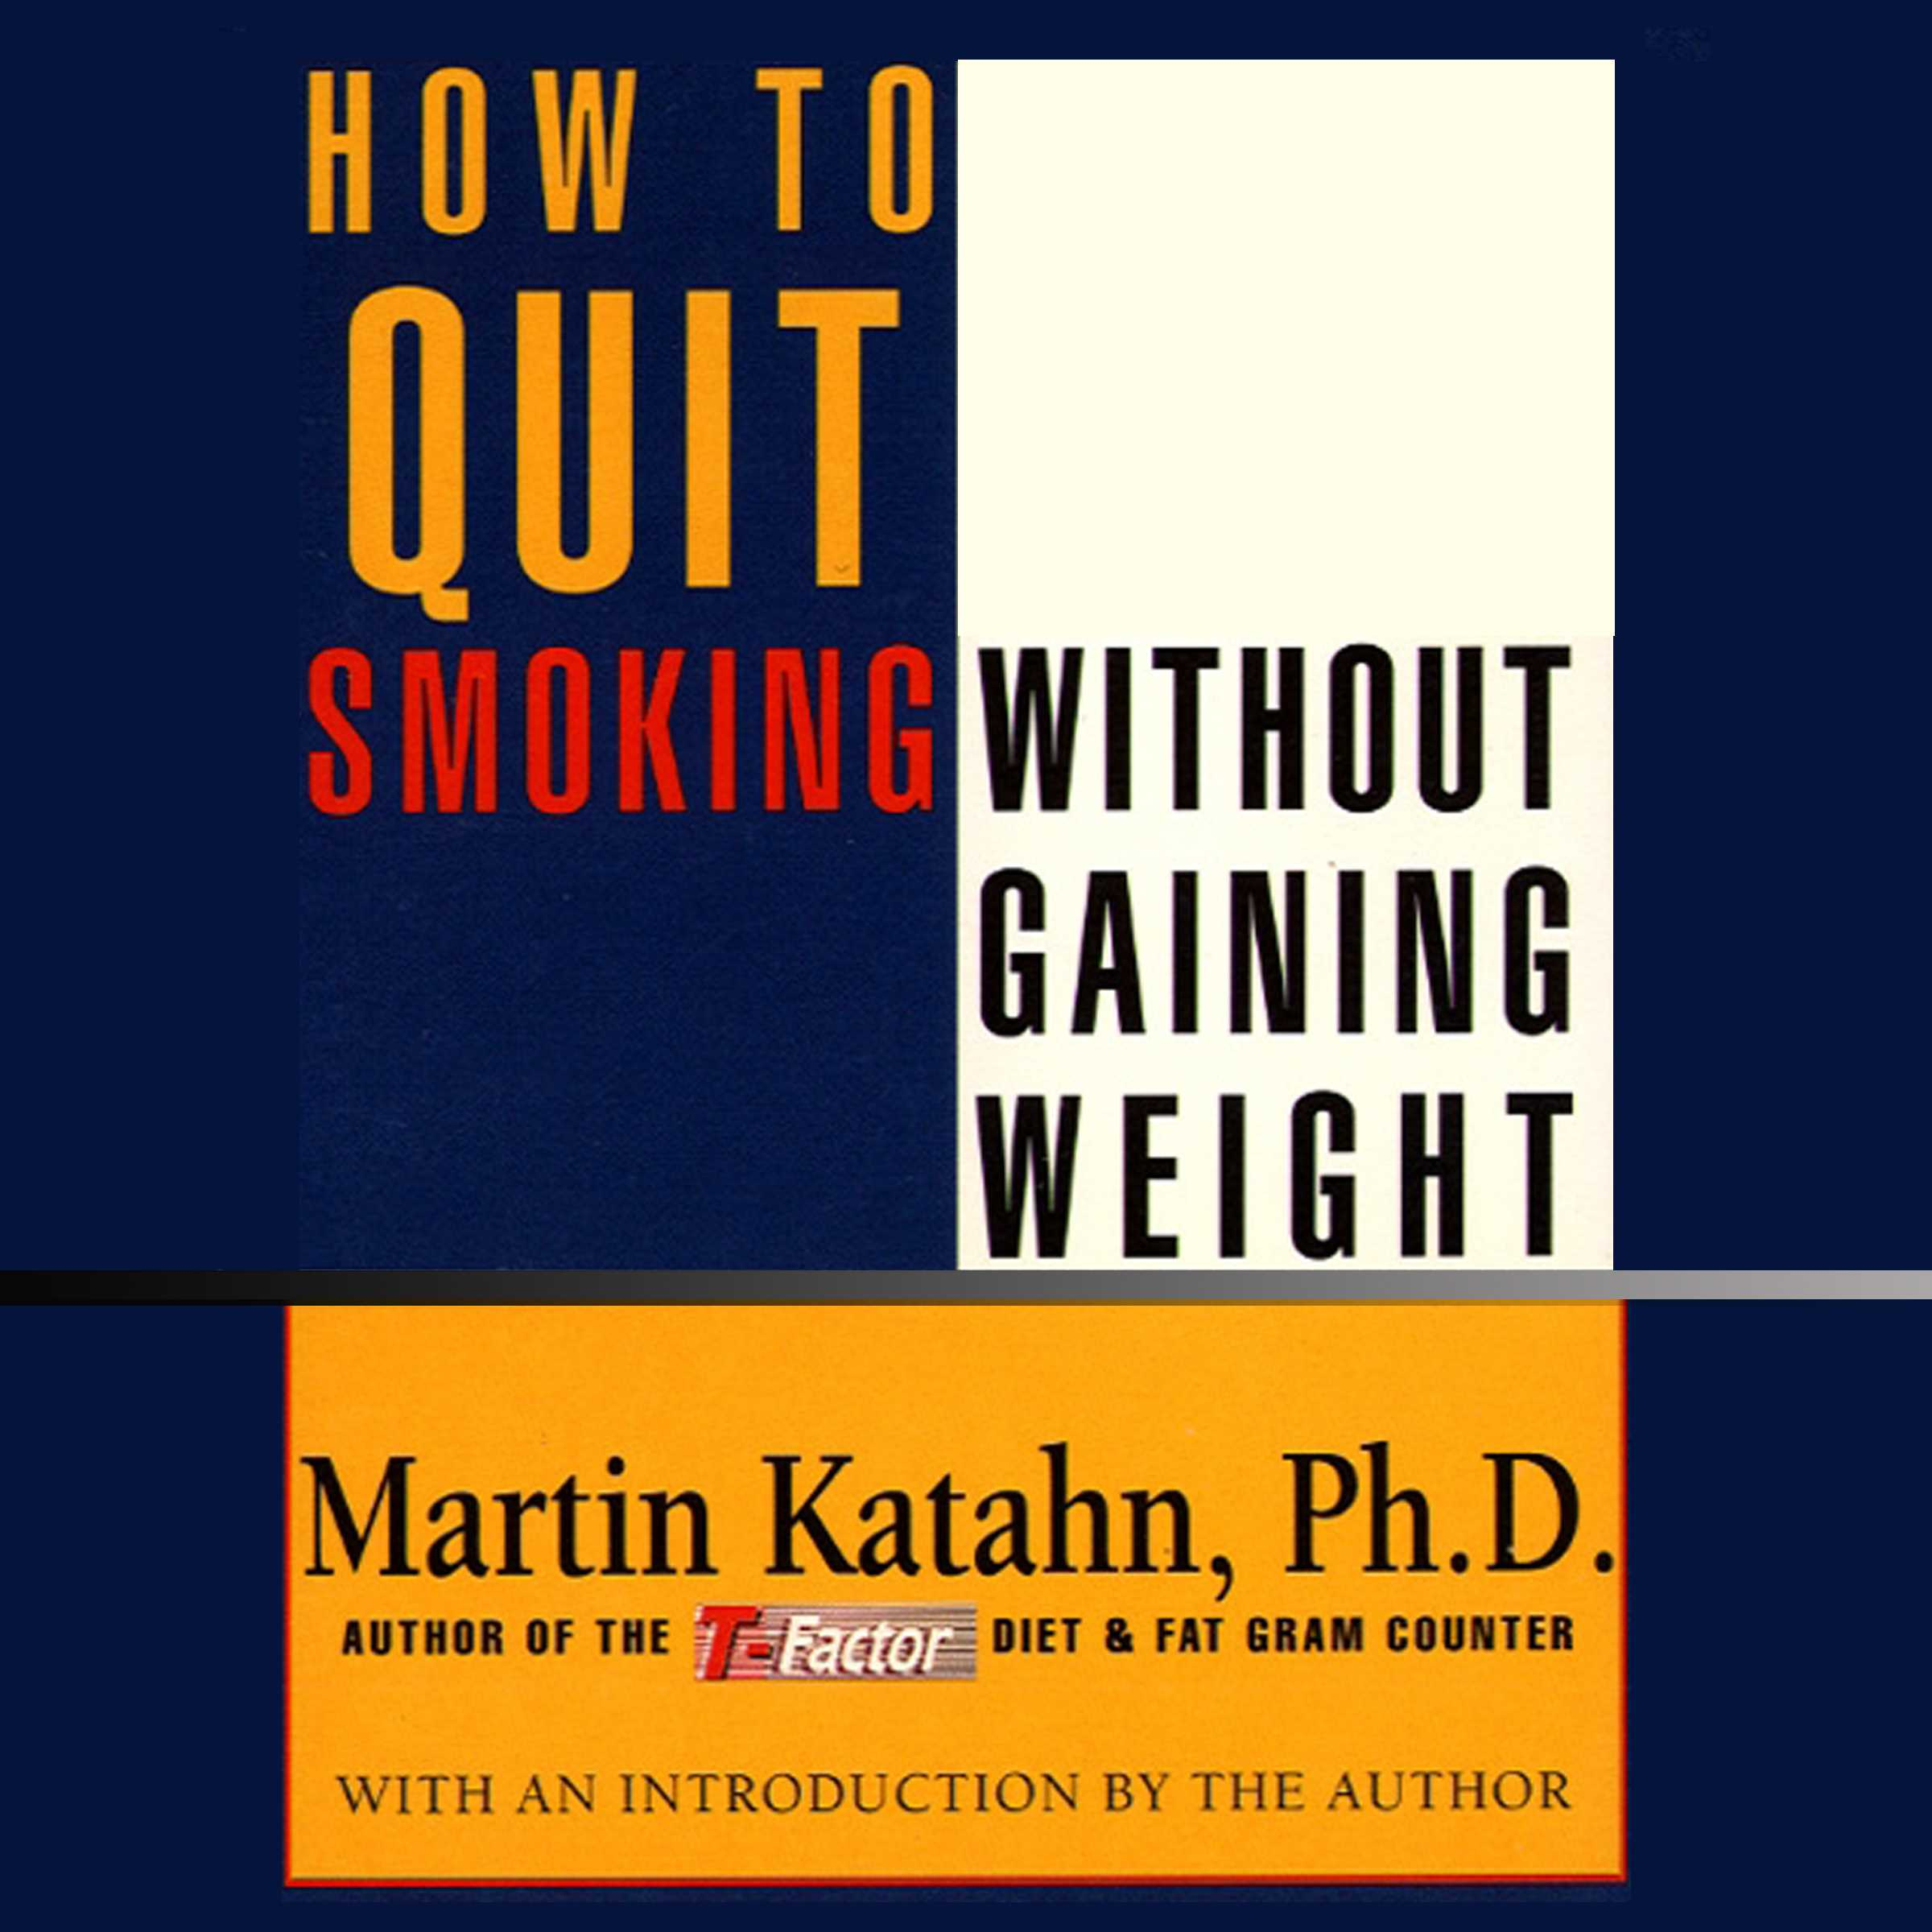 How-to-quit-smoking-without-gaining-weight-9780743548519_hr